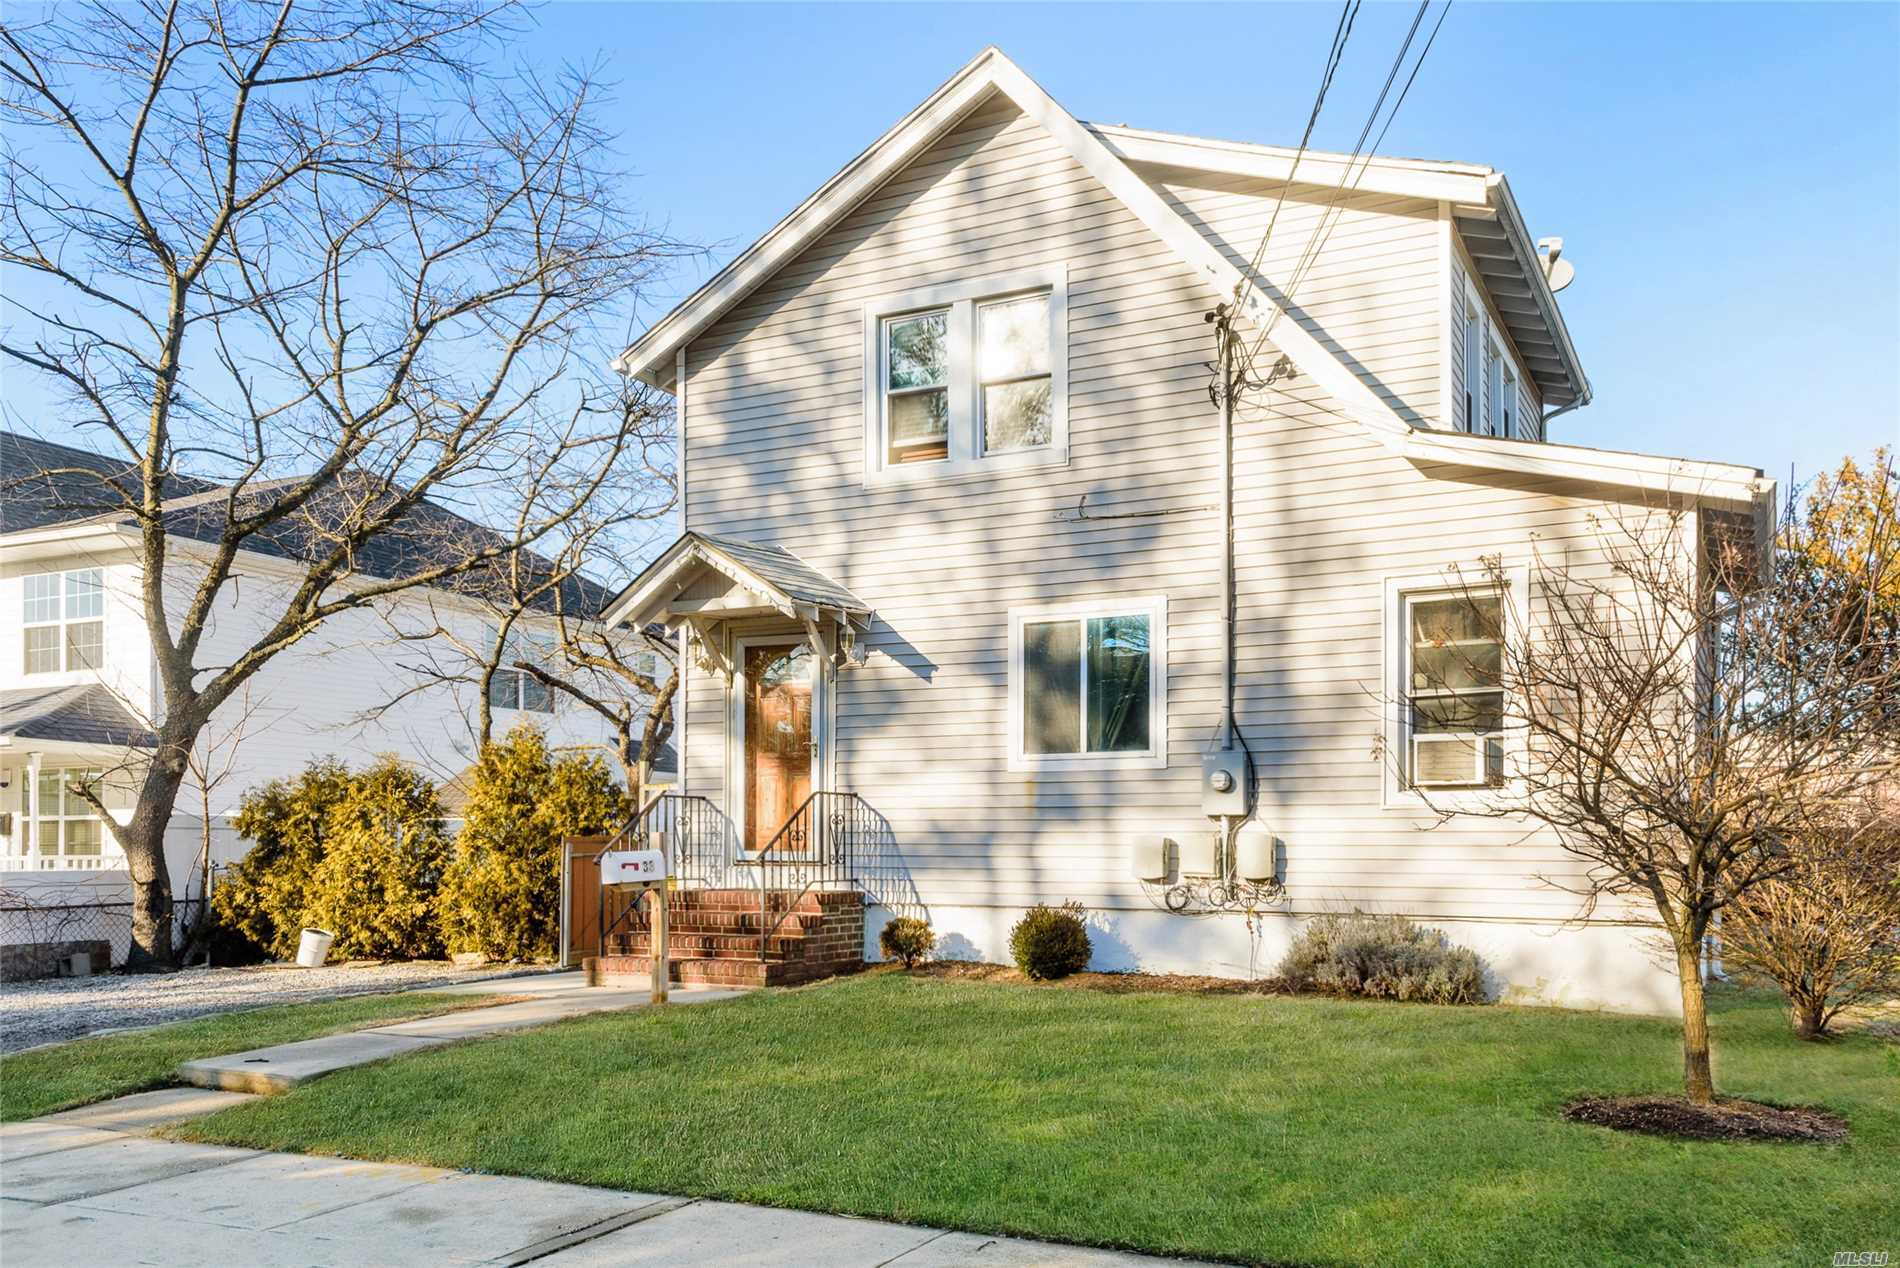 Corner Property Single Family Home Features 2 Bed 2 Bath With Partial Basement. Situated In A Prime Location With A Tremendous Garage!